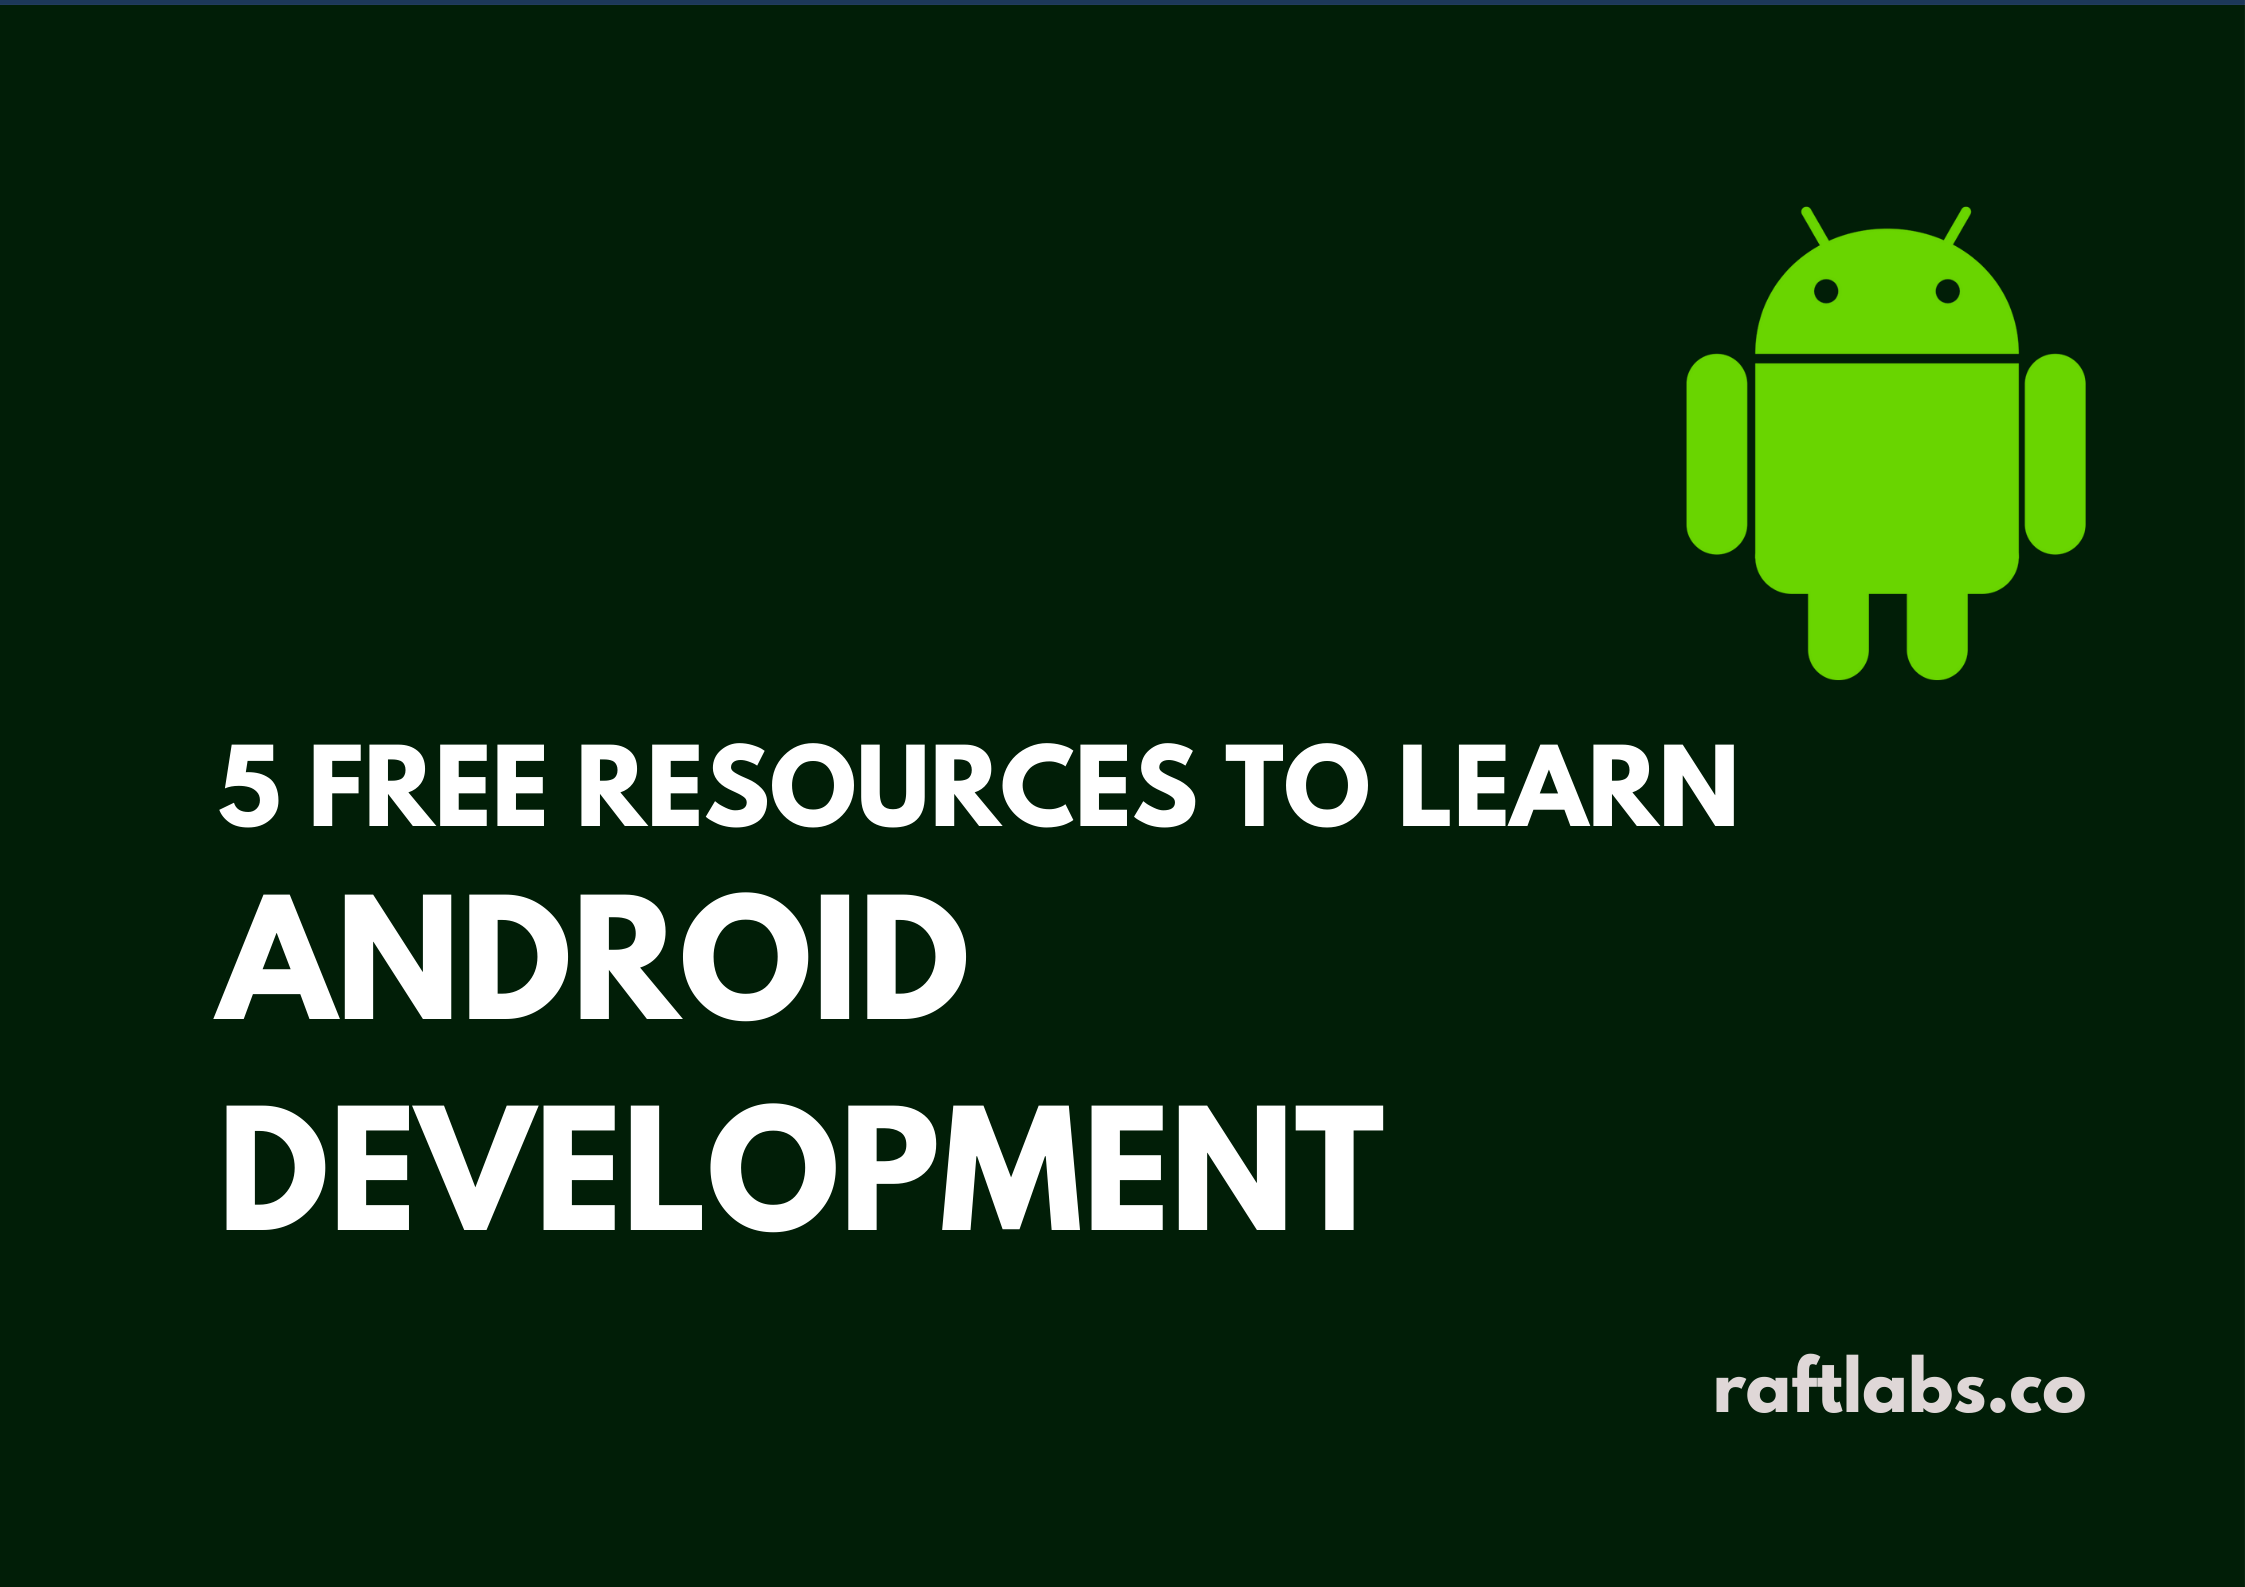 Thumbnail of Free Resources to learn Android Development